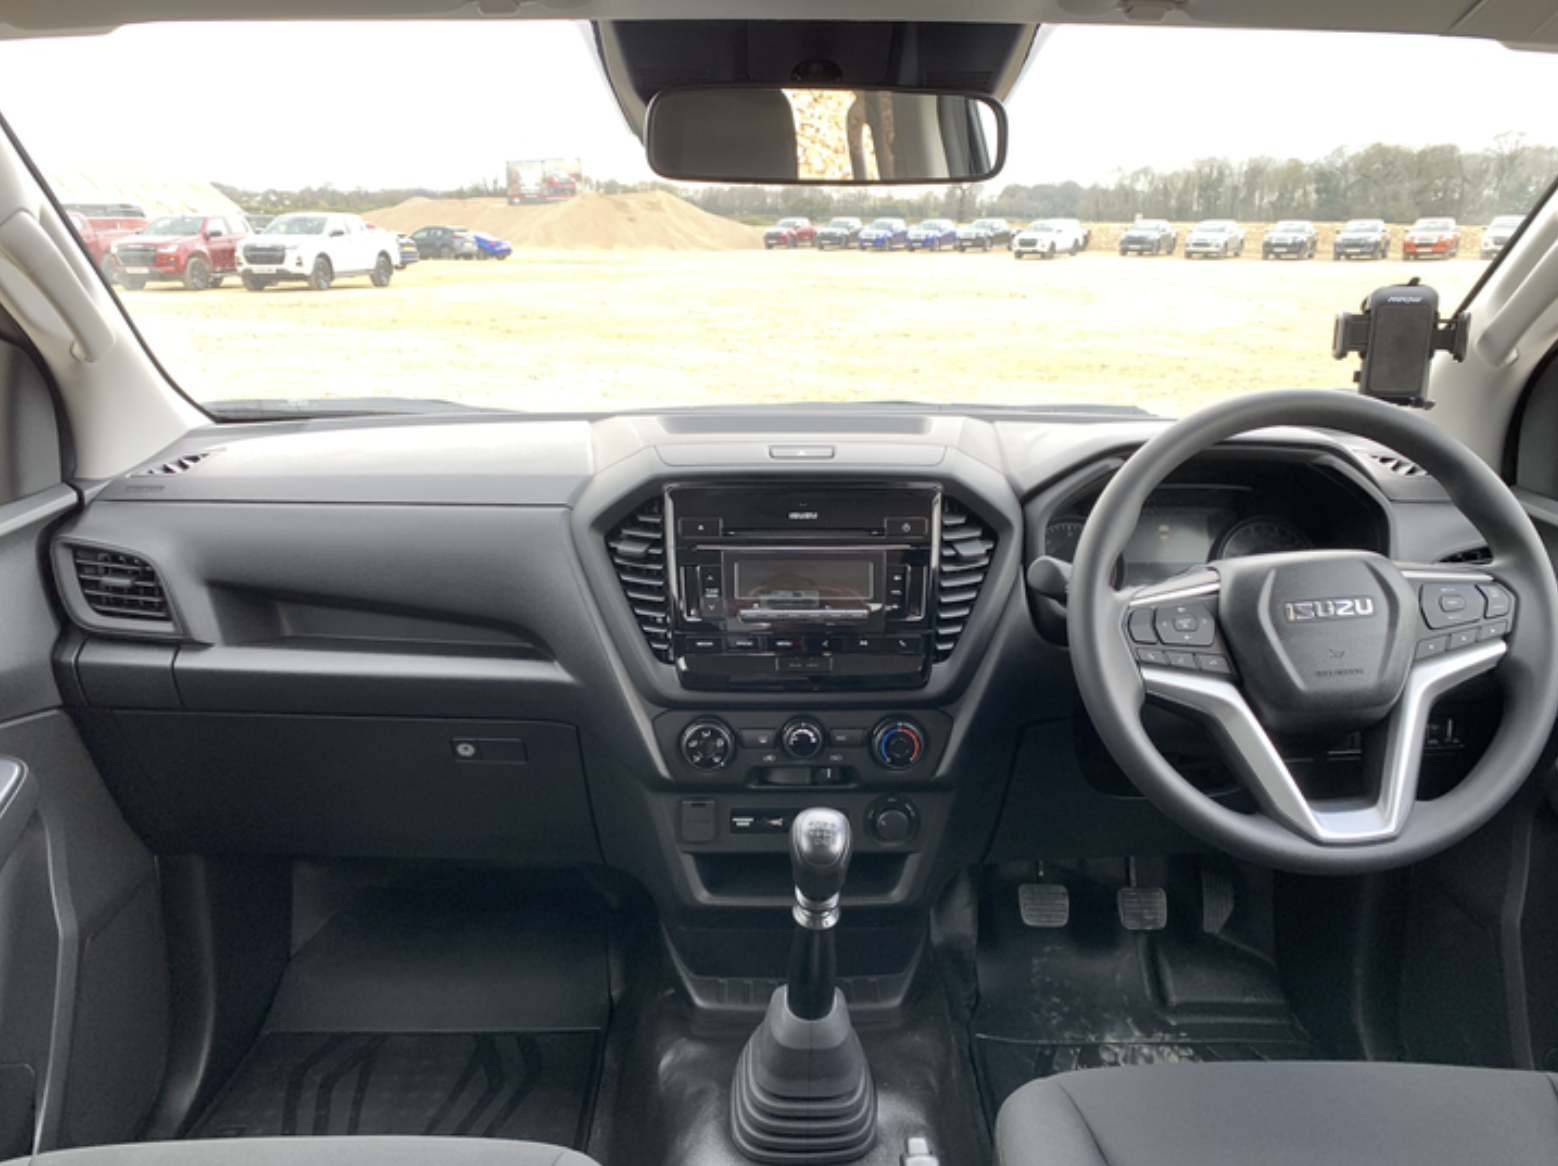 The Utility's dashboard is packed with driver aids and technology.